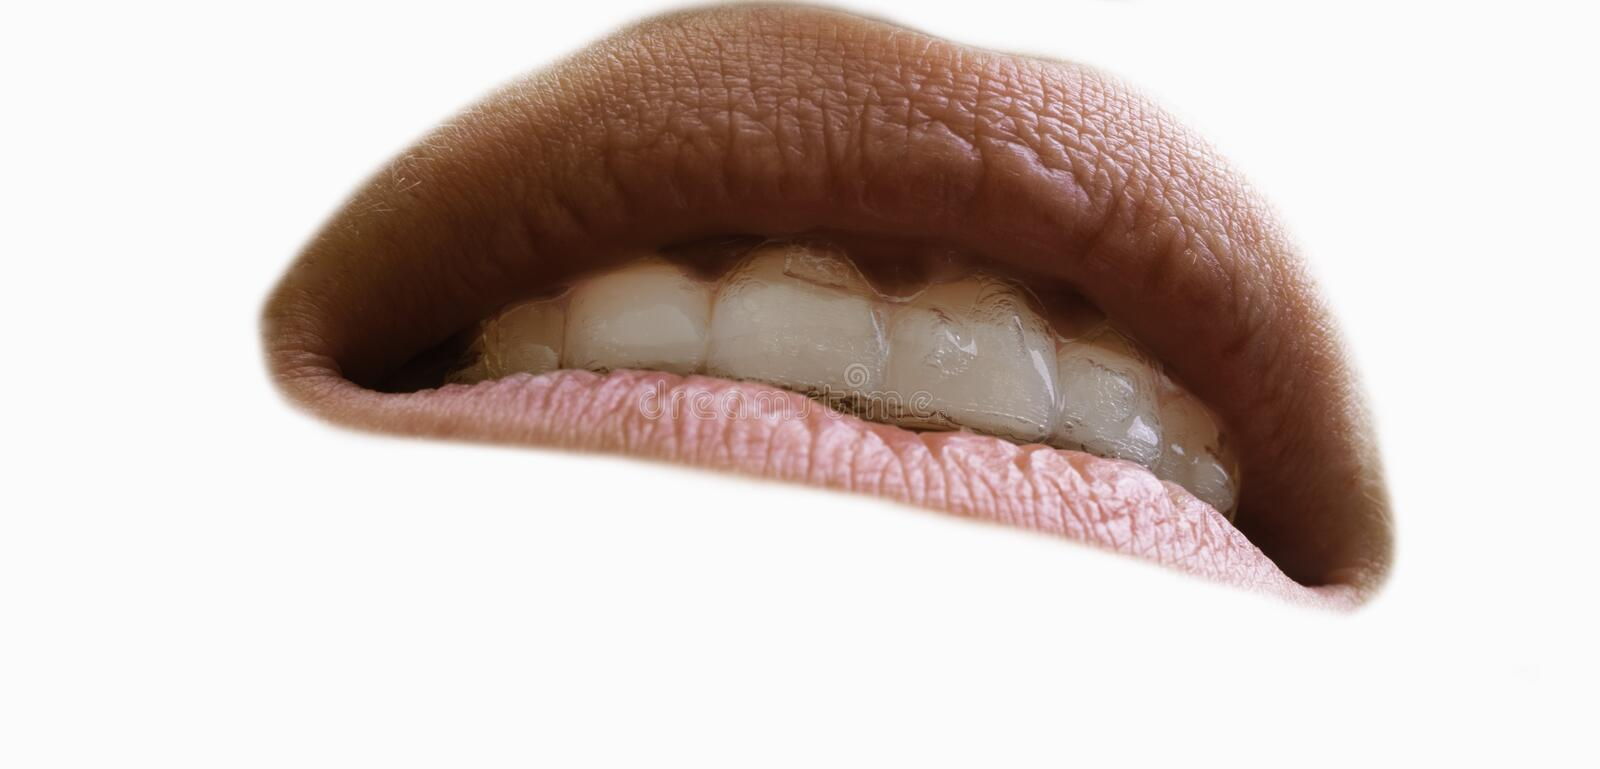 Healthy Smile. Teeth Whitening. Dental care Concept. Woman Smile Closeup. Beautiful Lips and Teeth over white background royalty free stock photo